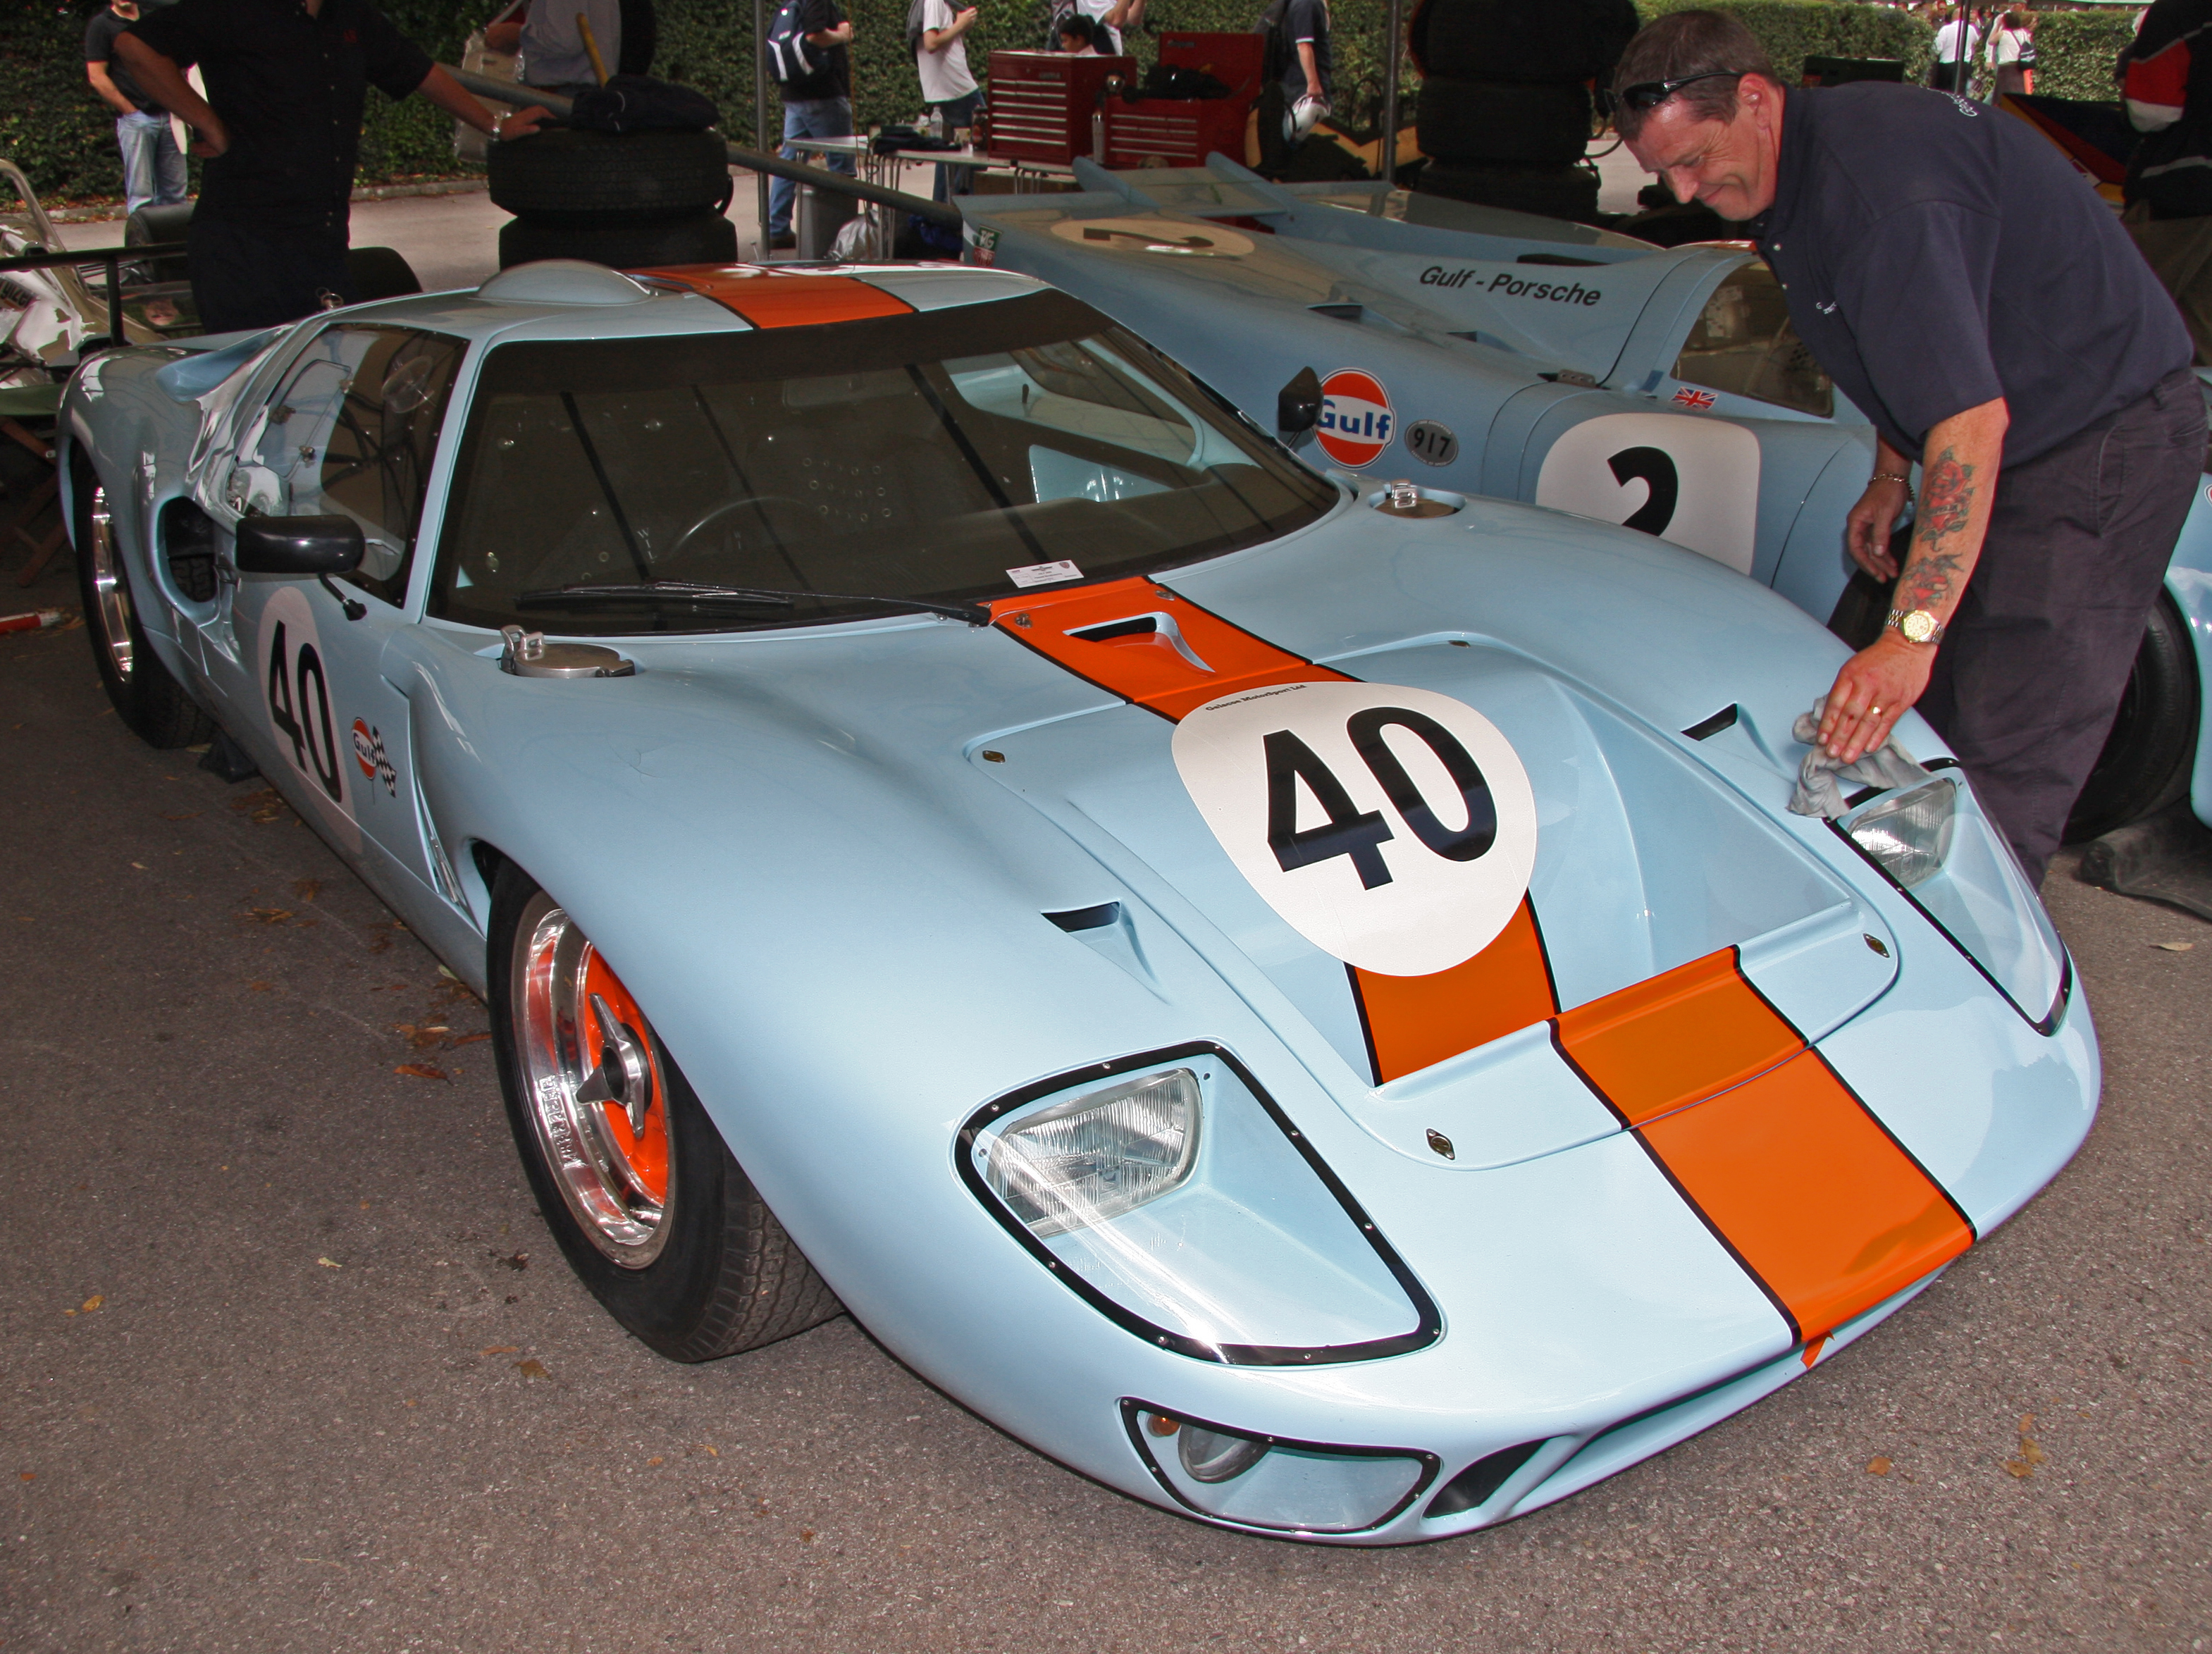 File:Ford GT40 Gulf Front.jpg - Wikimedia Commons